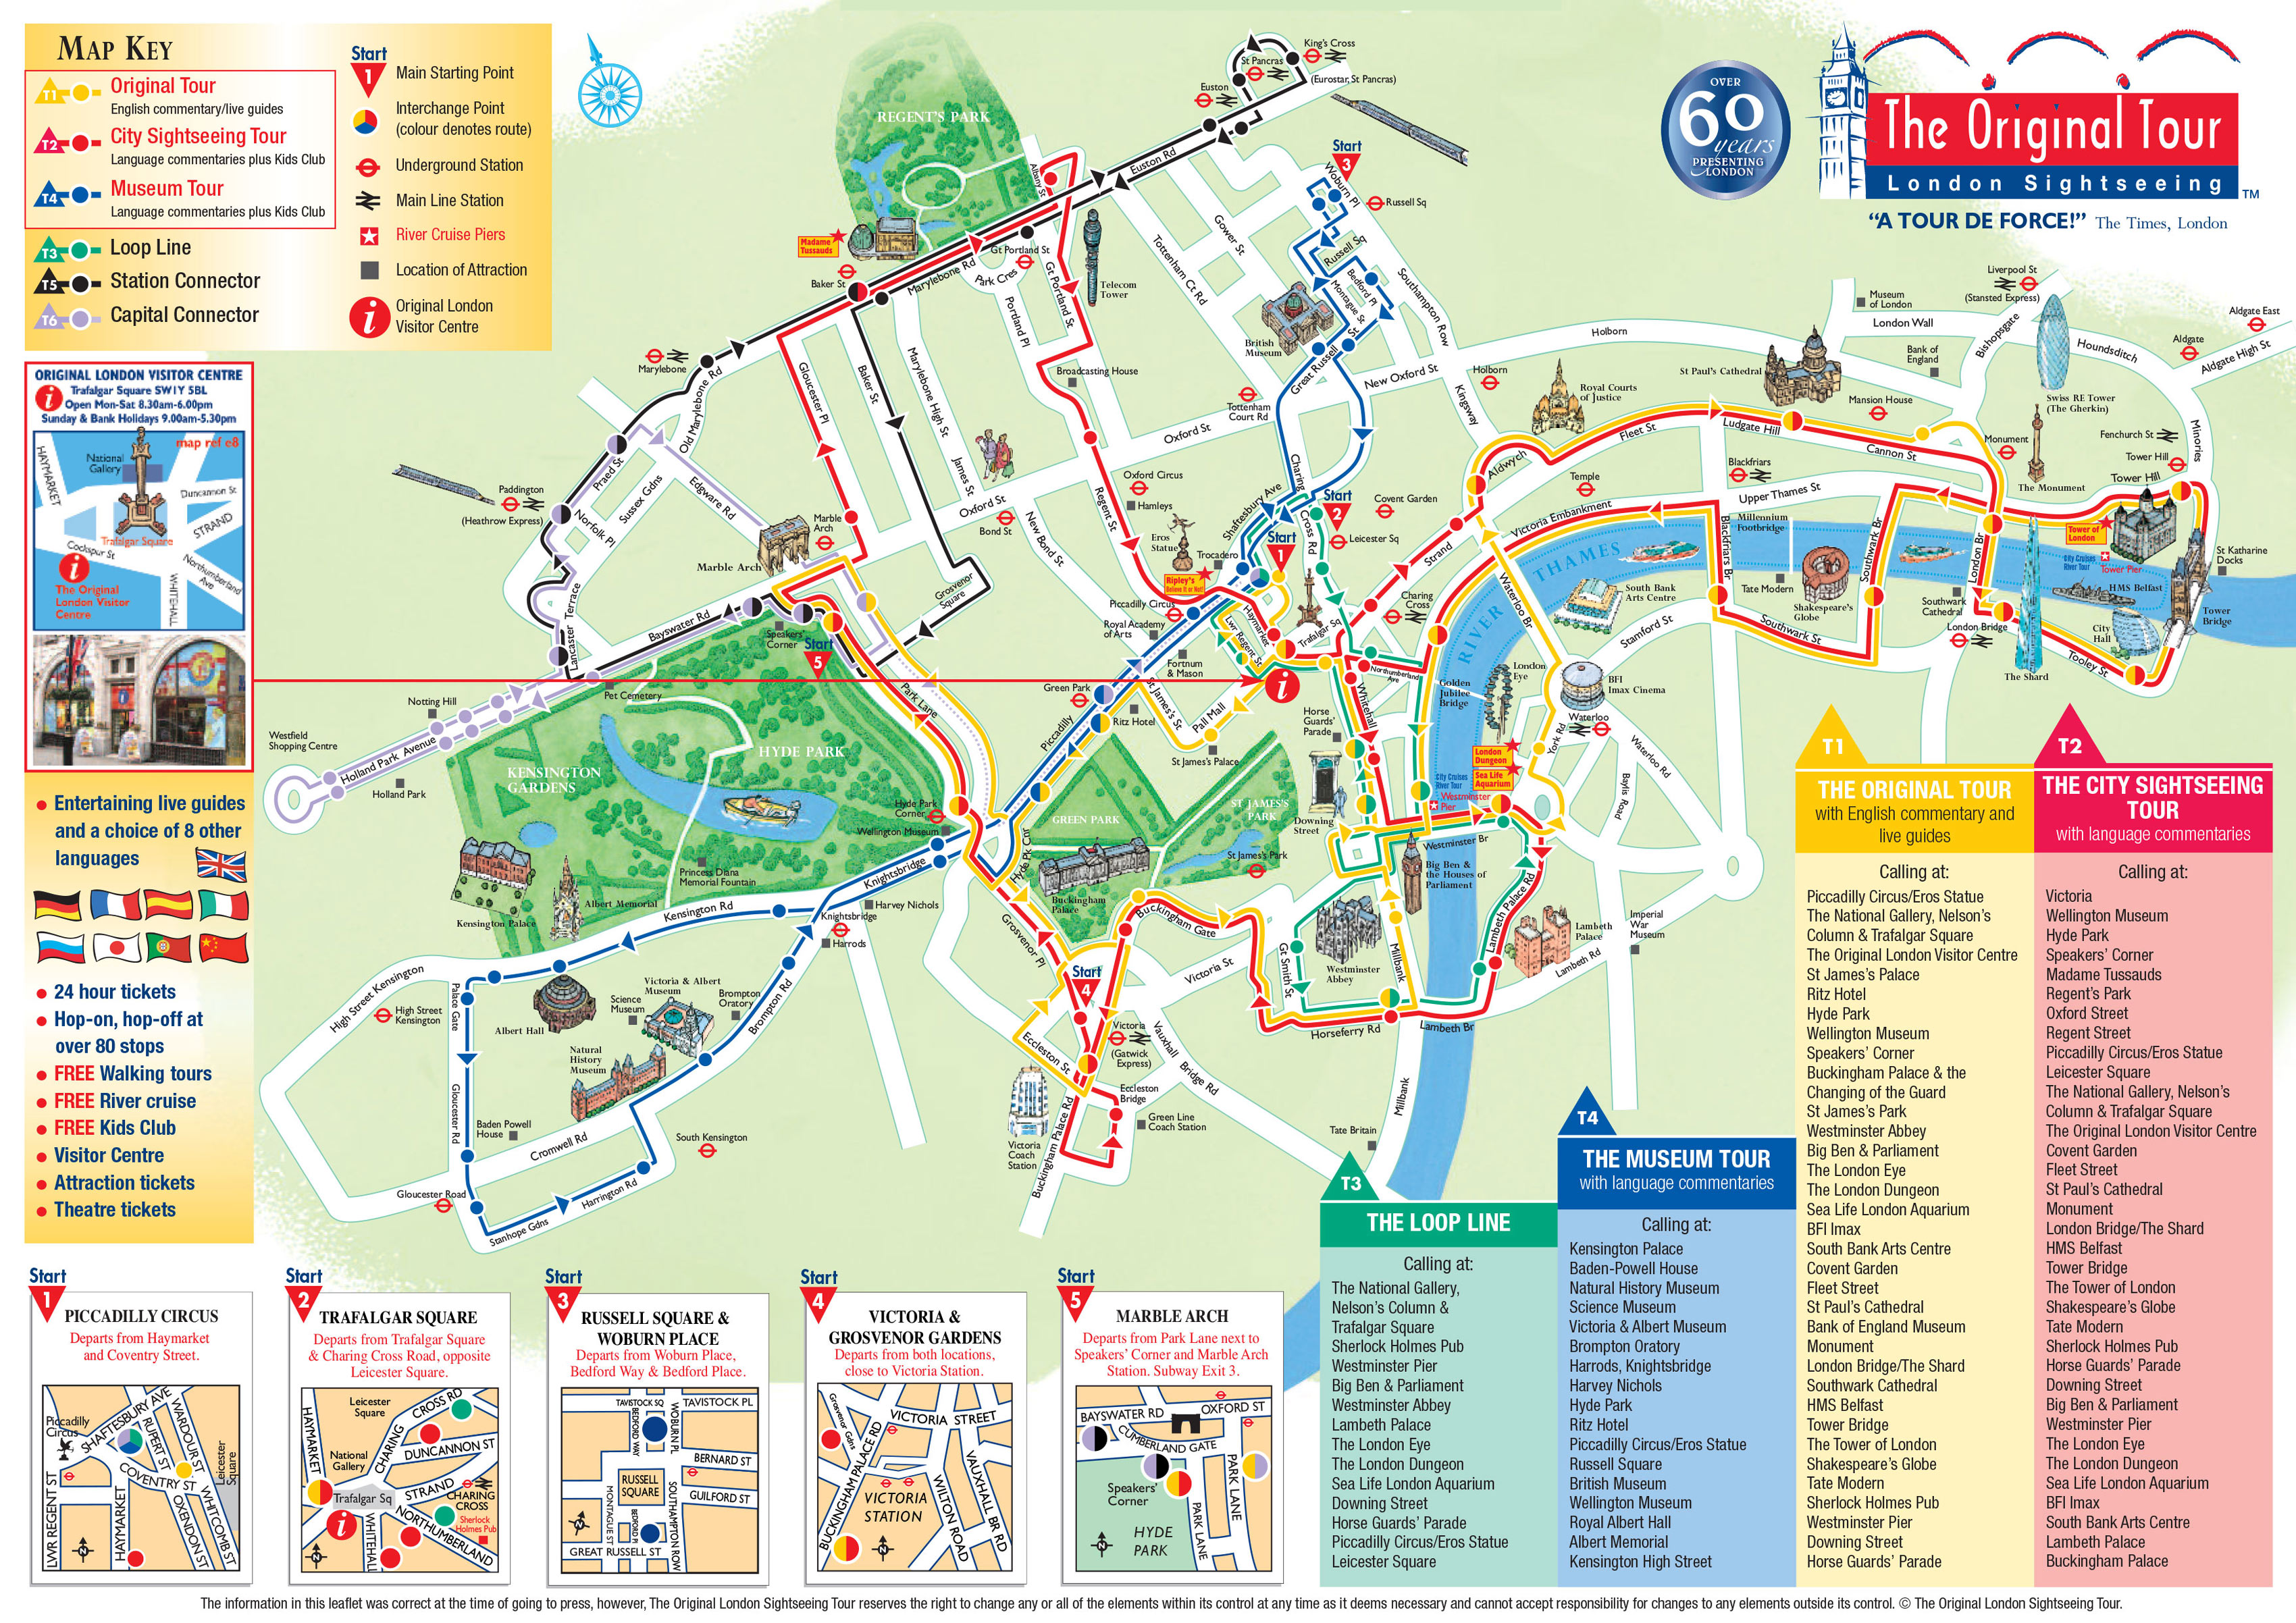 Carte De Londres Avec Le Plan Du Bus Touristique The Original Tour